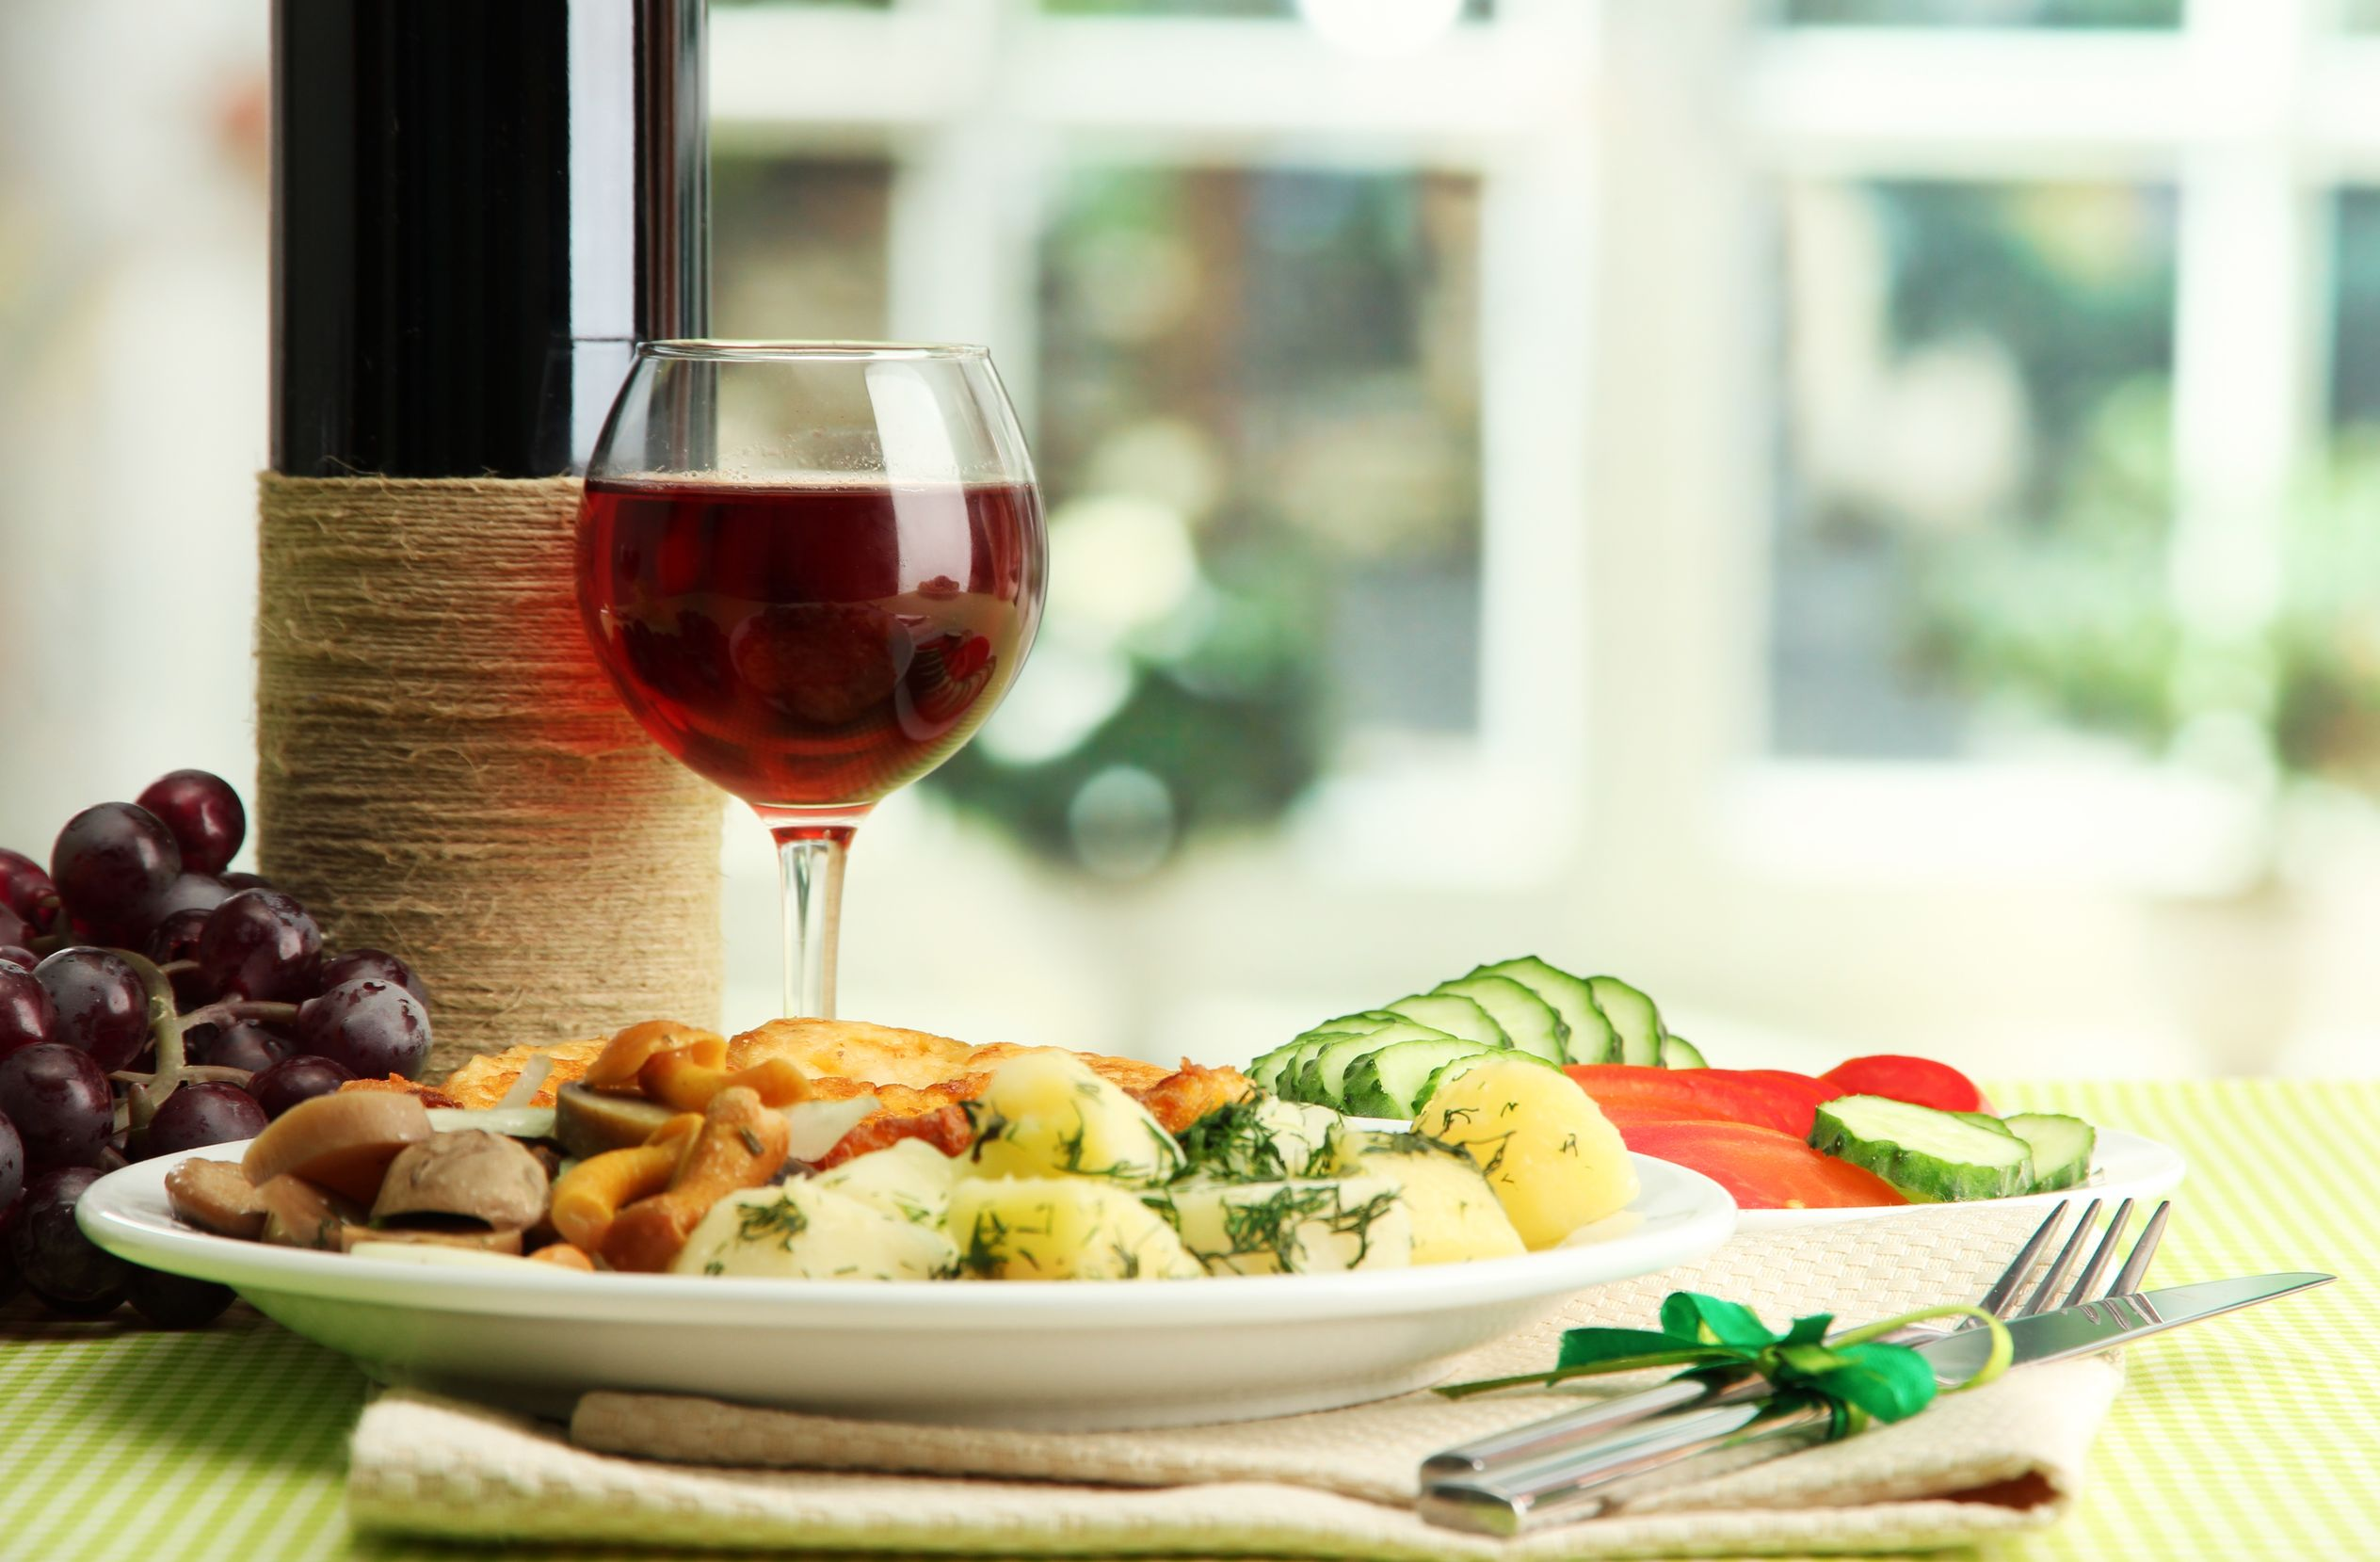 australia wine and food 123rf